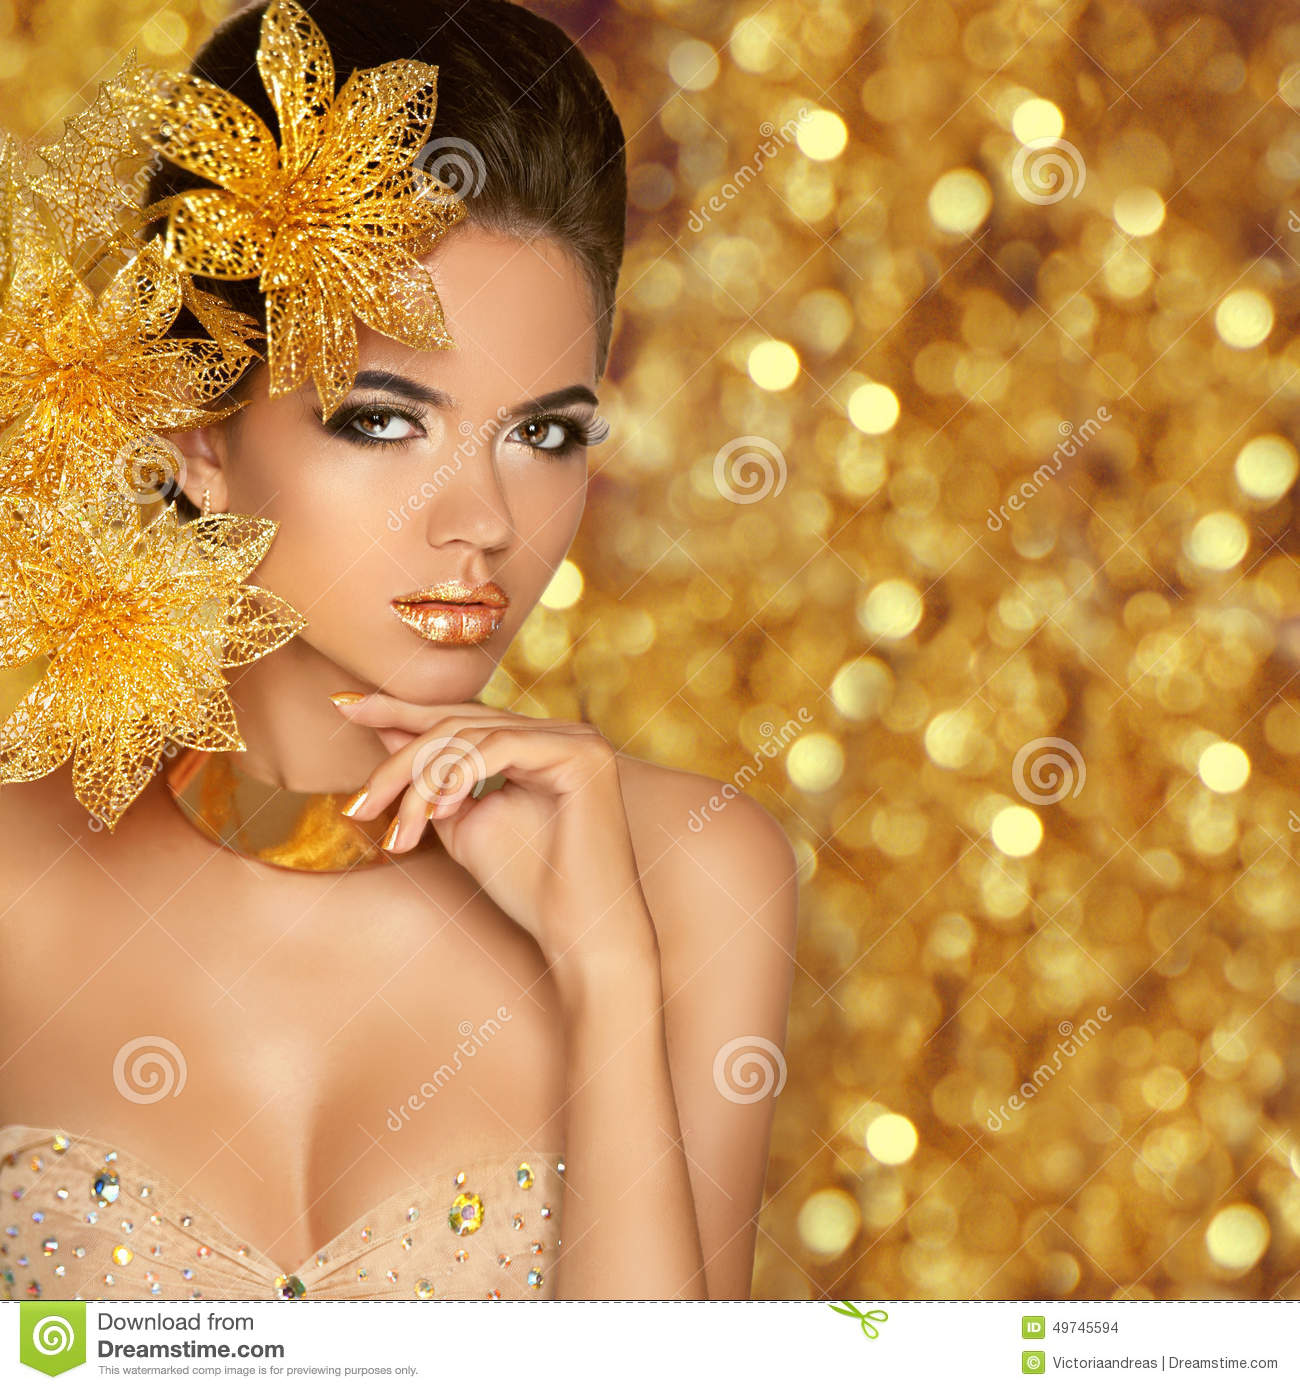 Fall Feather Wallpaper Fashion Beauty Girl Portrait Isolated On Golden Christmas